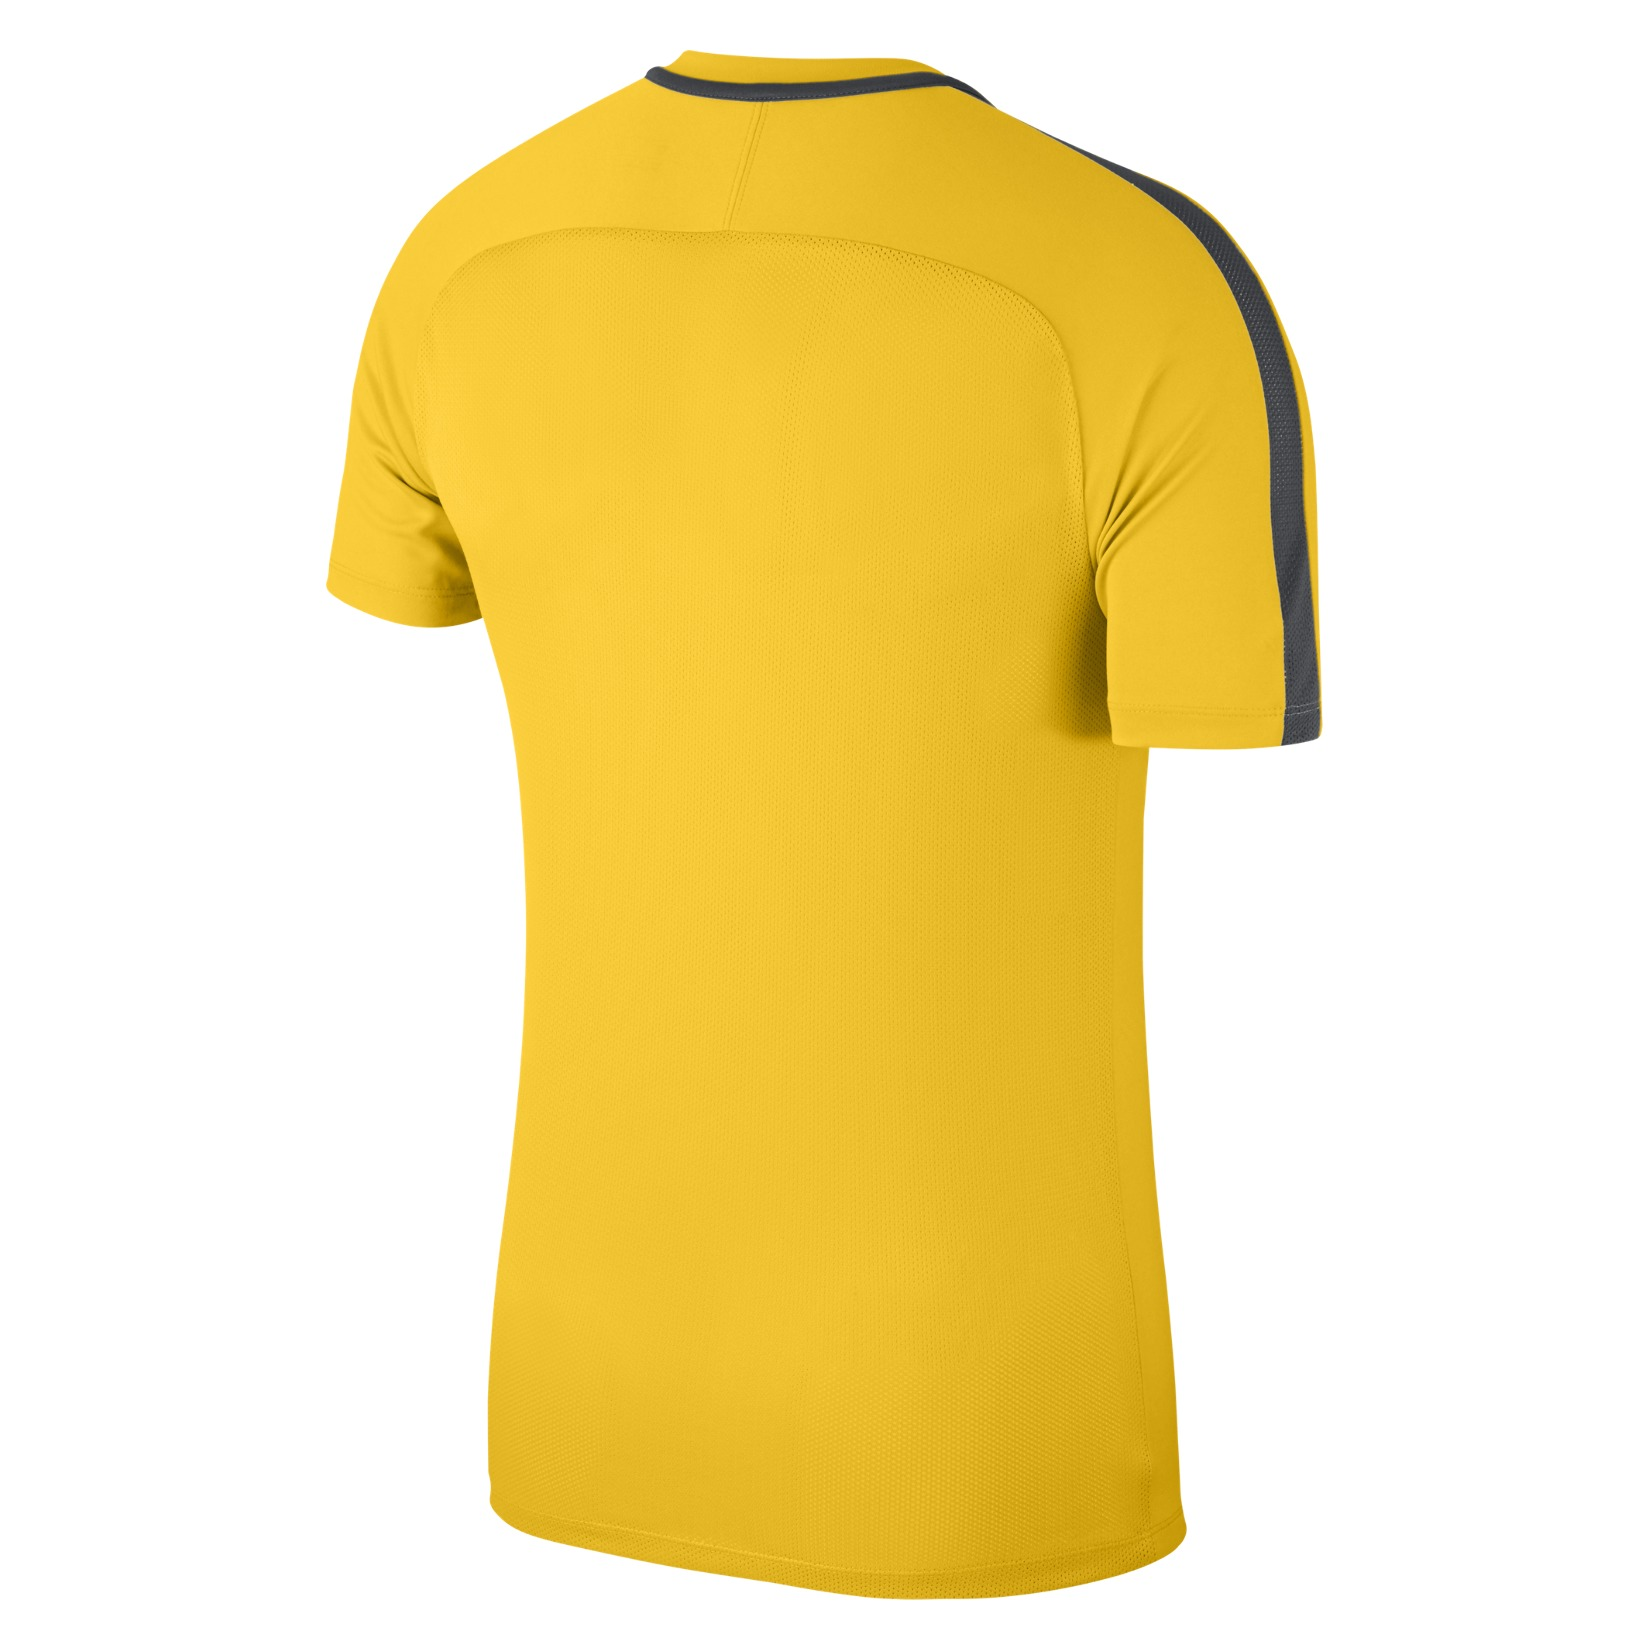 Nike Academy 18 Short Sleeve Top (m) Tour Yellow-Anthracite-Black